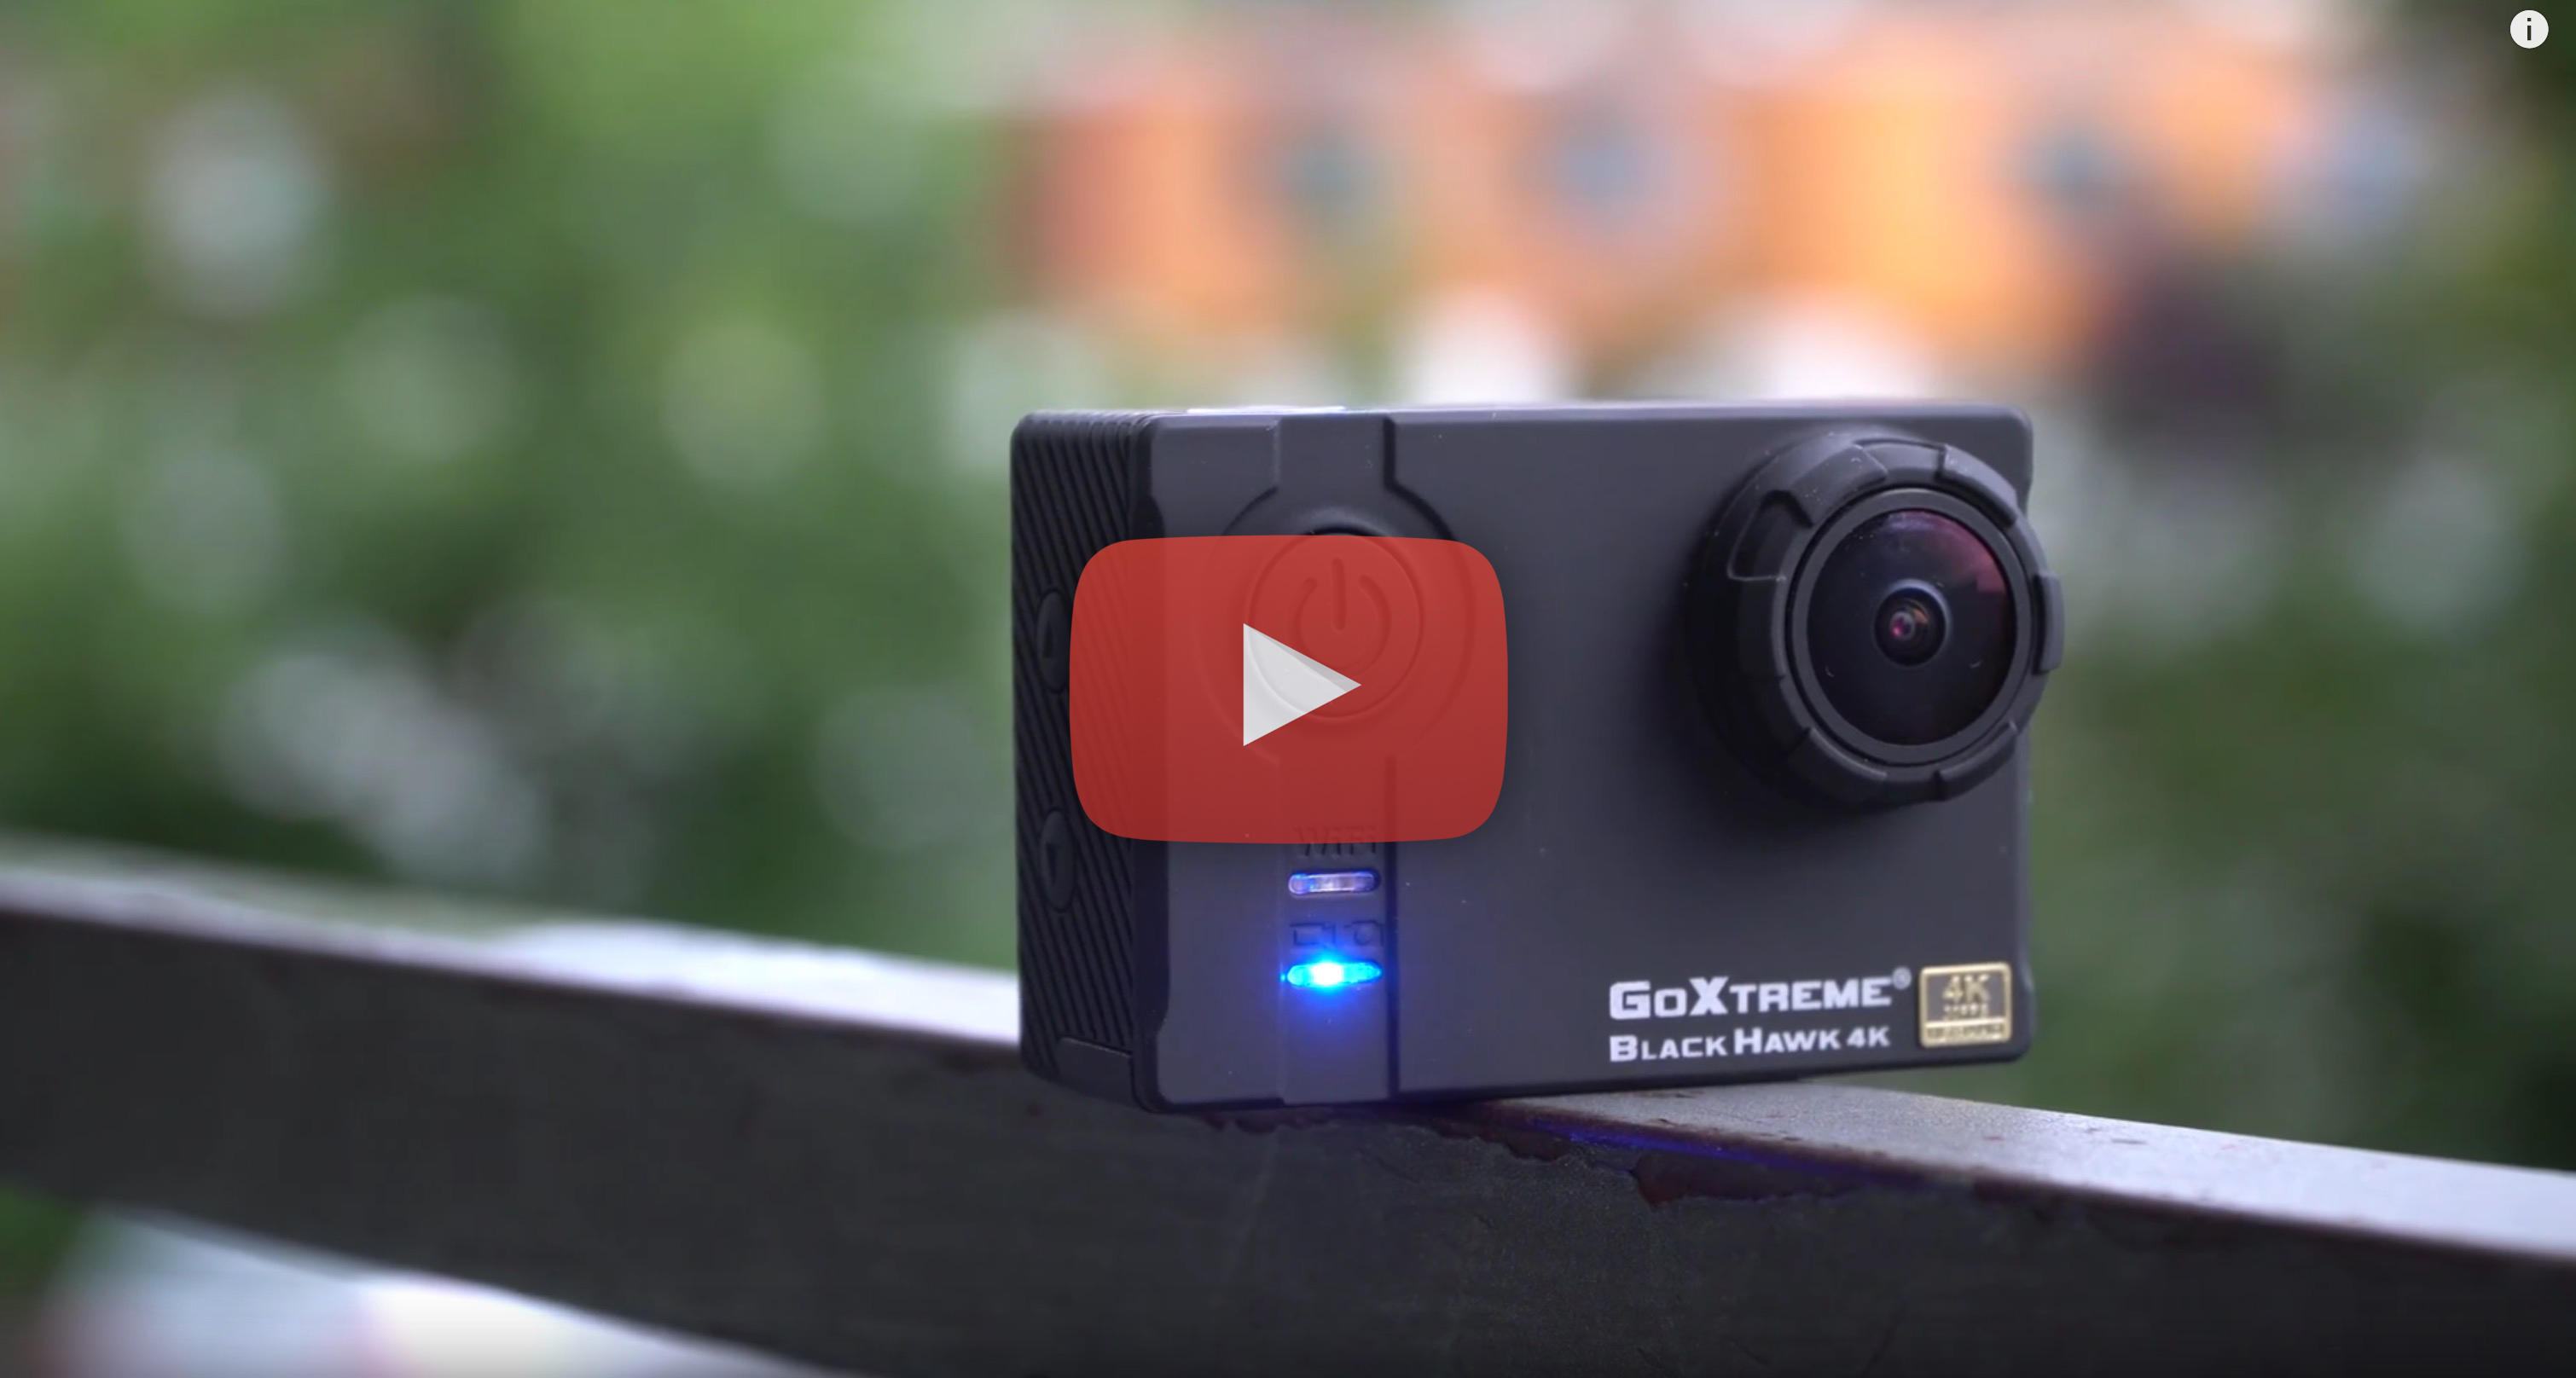 Easypix BlackHawk 4k Review - Better than GoPro actioncams?